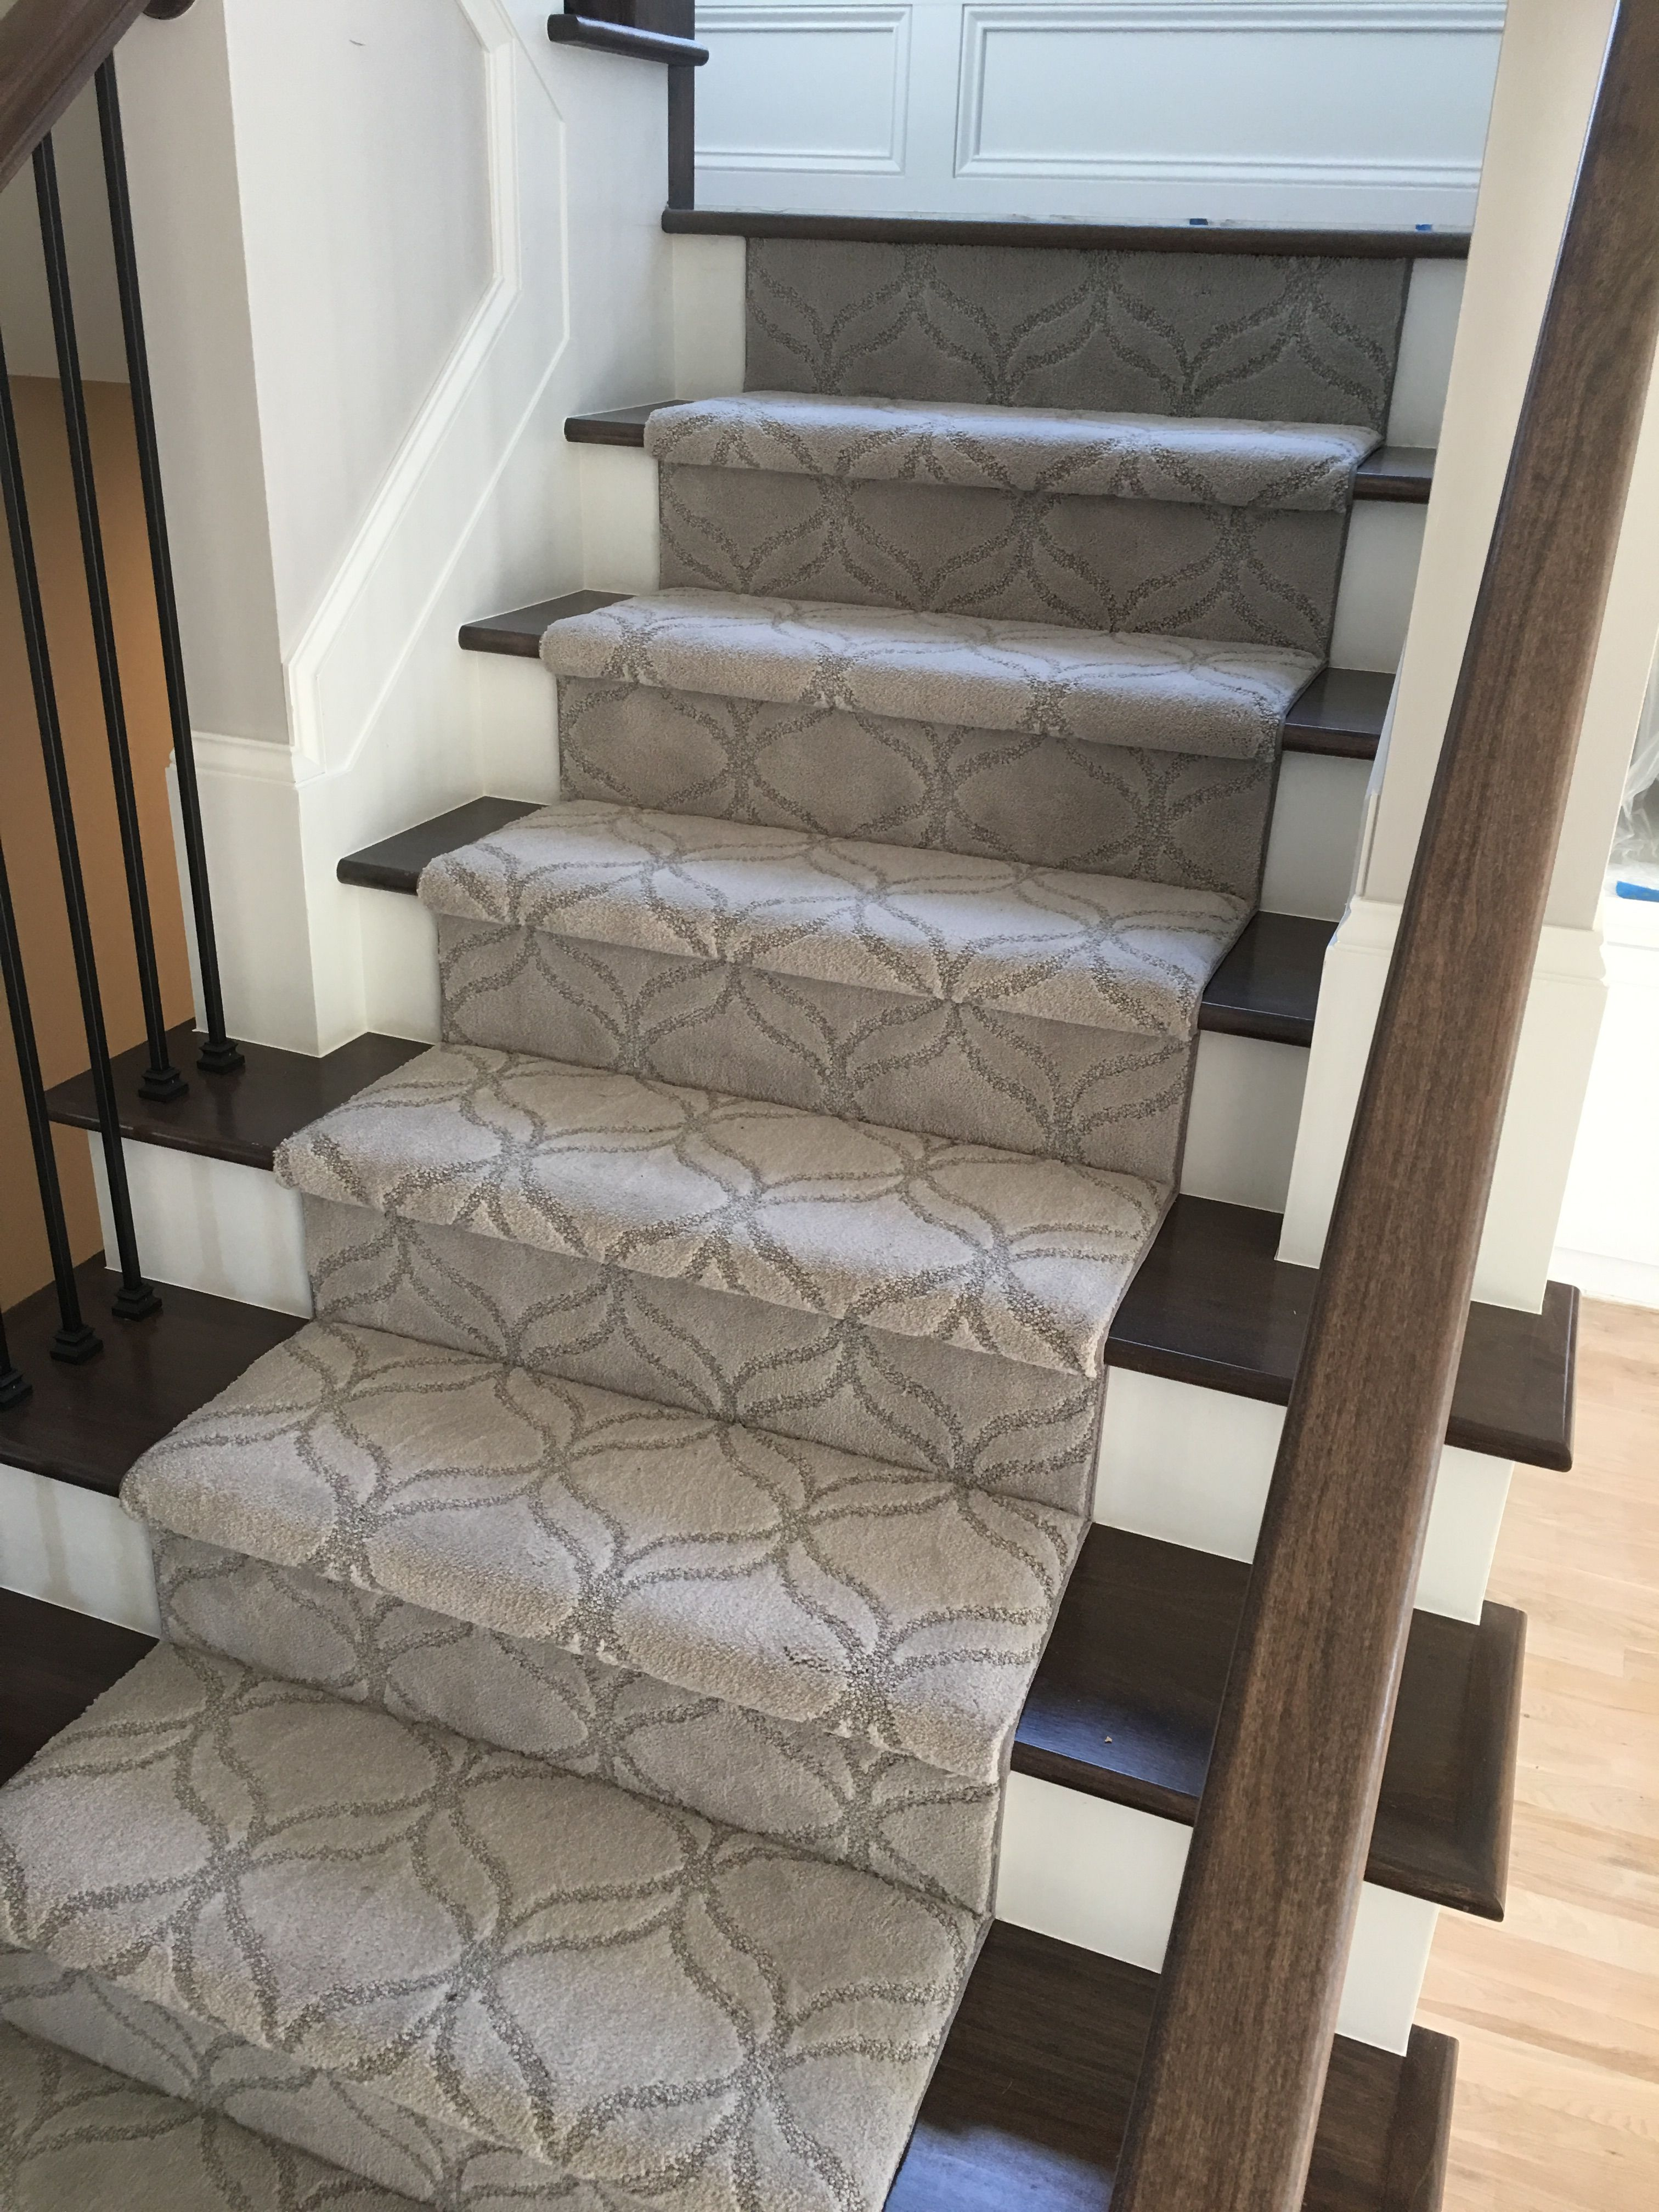 Appreciation Dundee By Shaw Stairs Stair Runner Patterned | Carpet Rugs For Stairs | Navy Blue | Beige | Tartan | Wool | Diamond Pattern